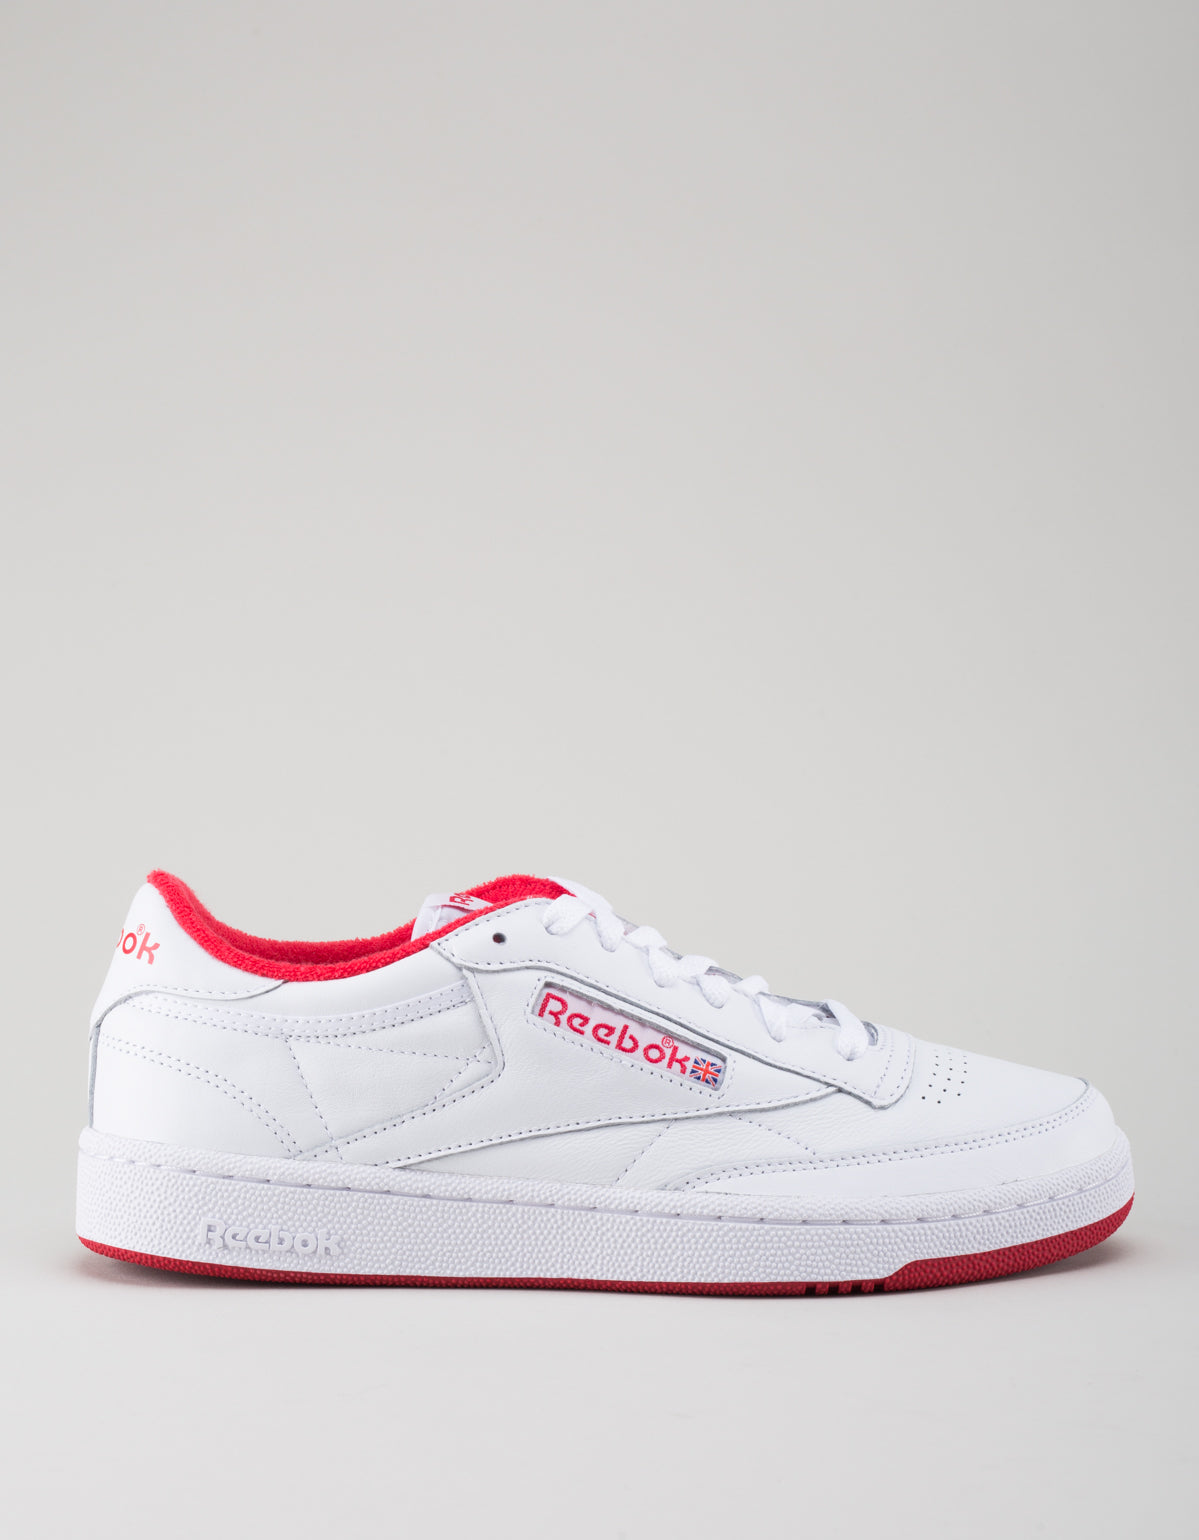 dd0c991ba0edd8 Reebok Men s Club C 85 Archive White Red – Still Life